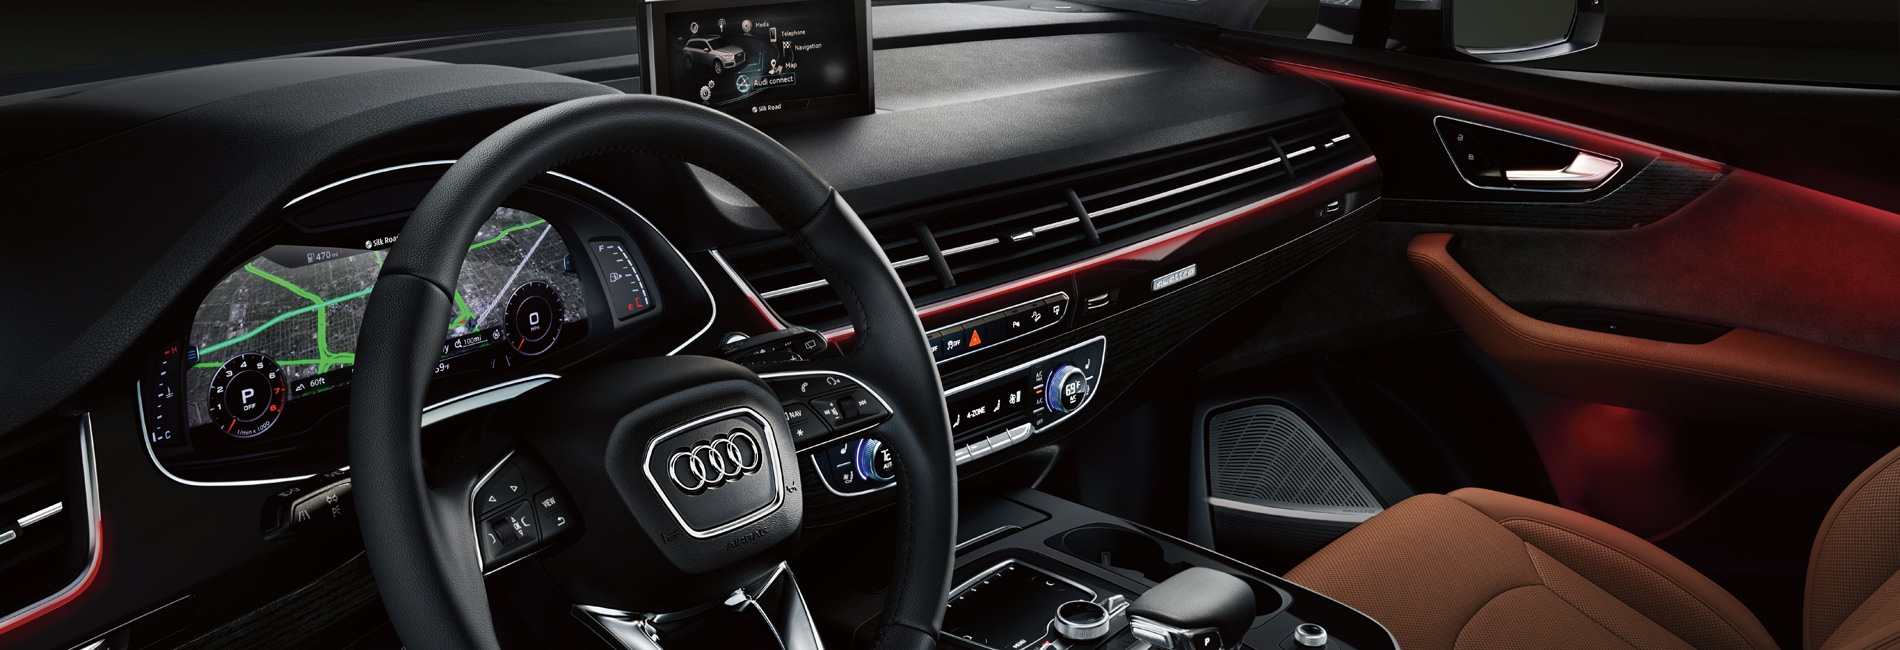 Audi Q7 Interior  Features